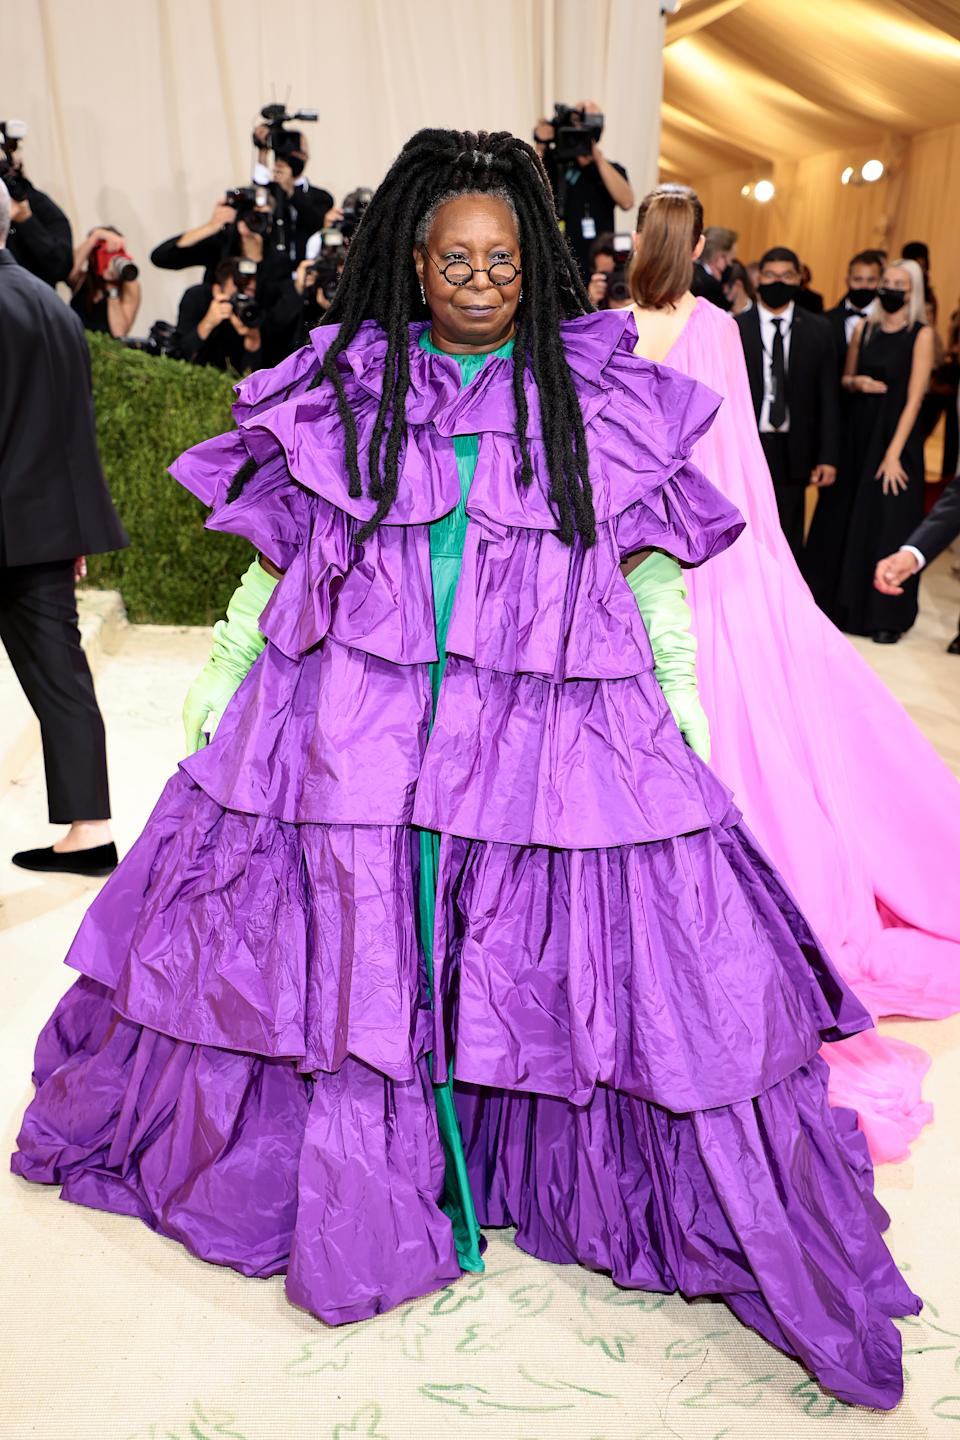 Whoopi Goldberg attends The 2021 Met Gala Celebrating In America: A Lexicon Of Fashion at Metropolitan Museum of Art on September 13, 2021 in New York City. (Getty Images)